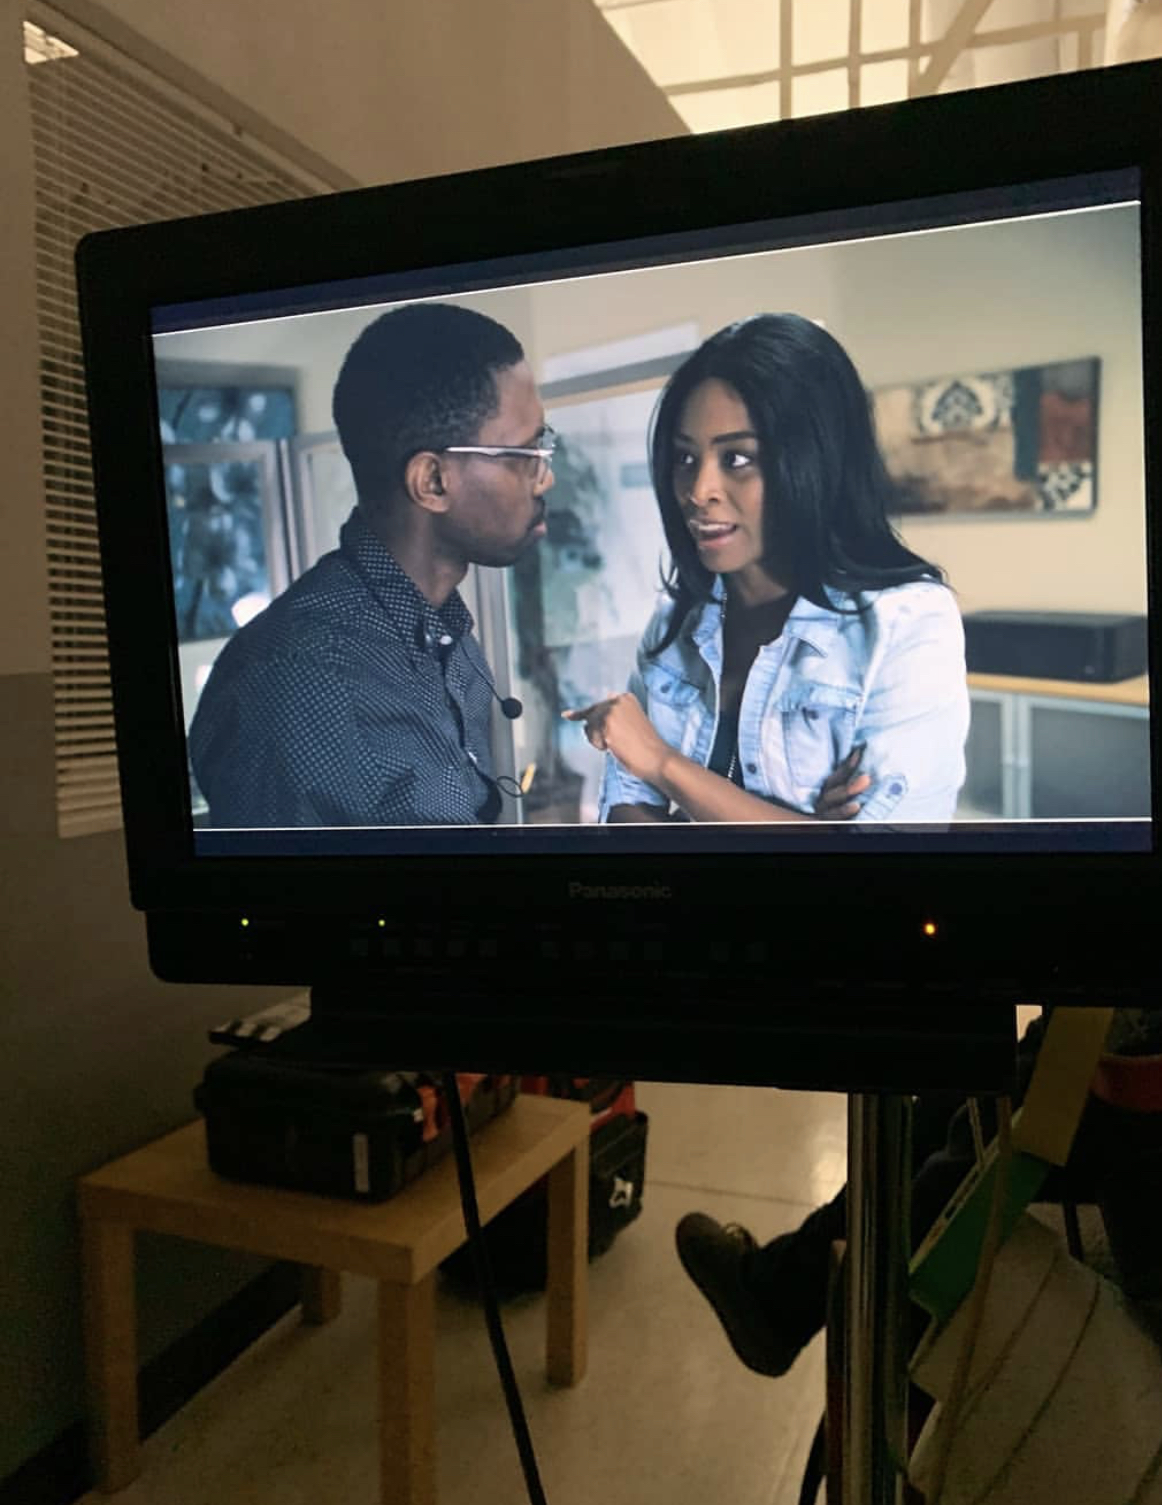 Melvin Jackson Jr. and Jasmine Hester in Chronicles of Jessica Wu (2017)